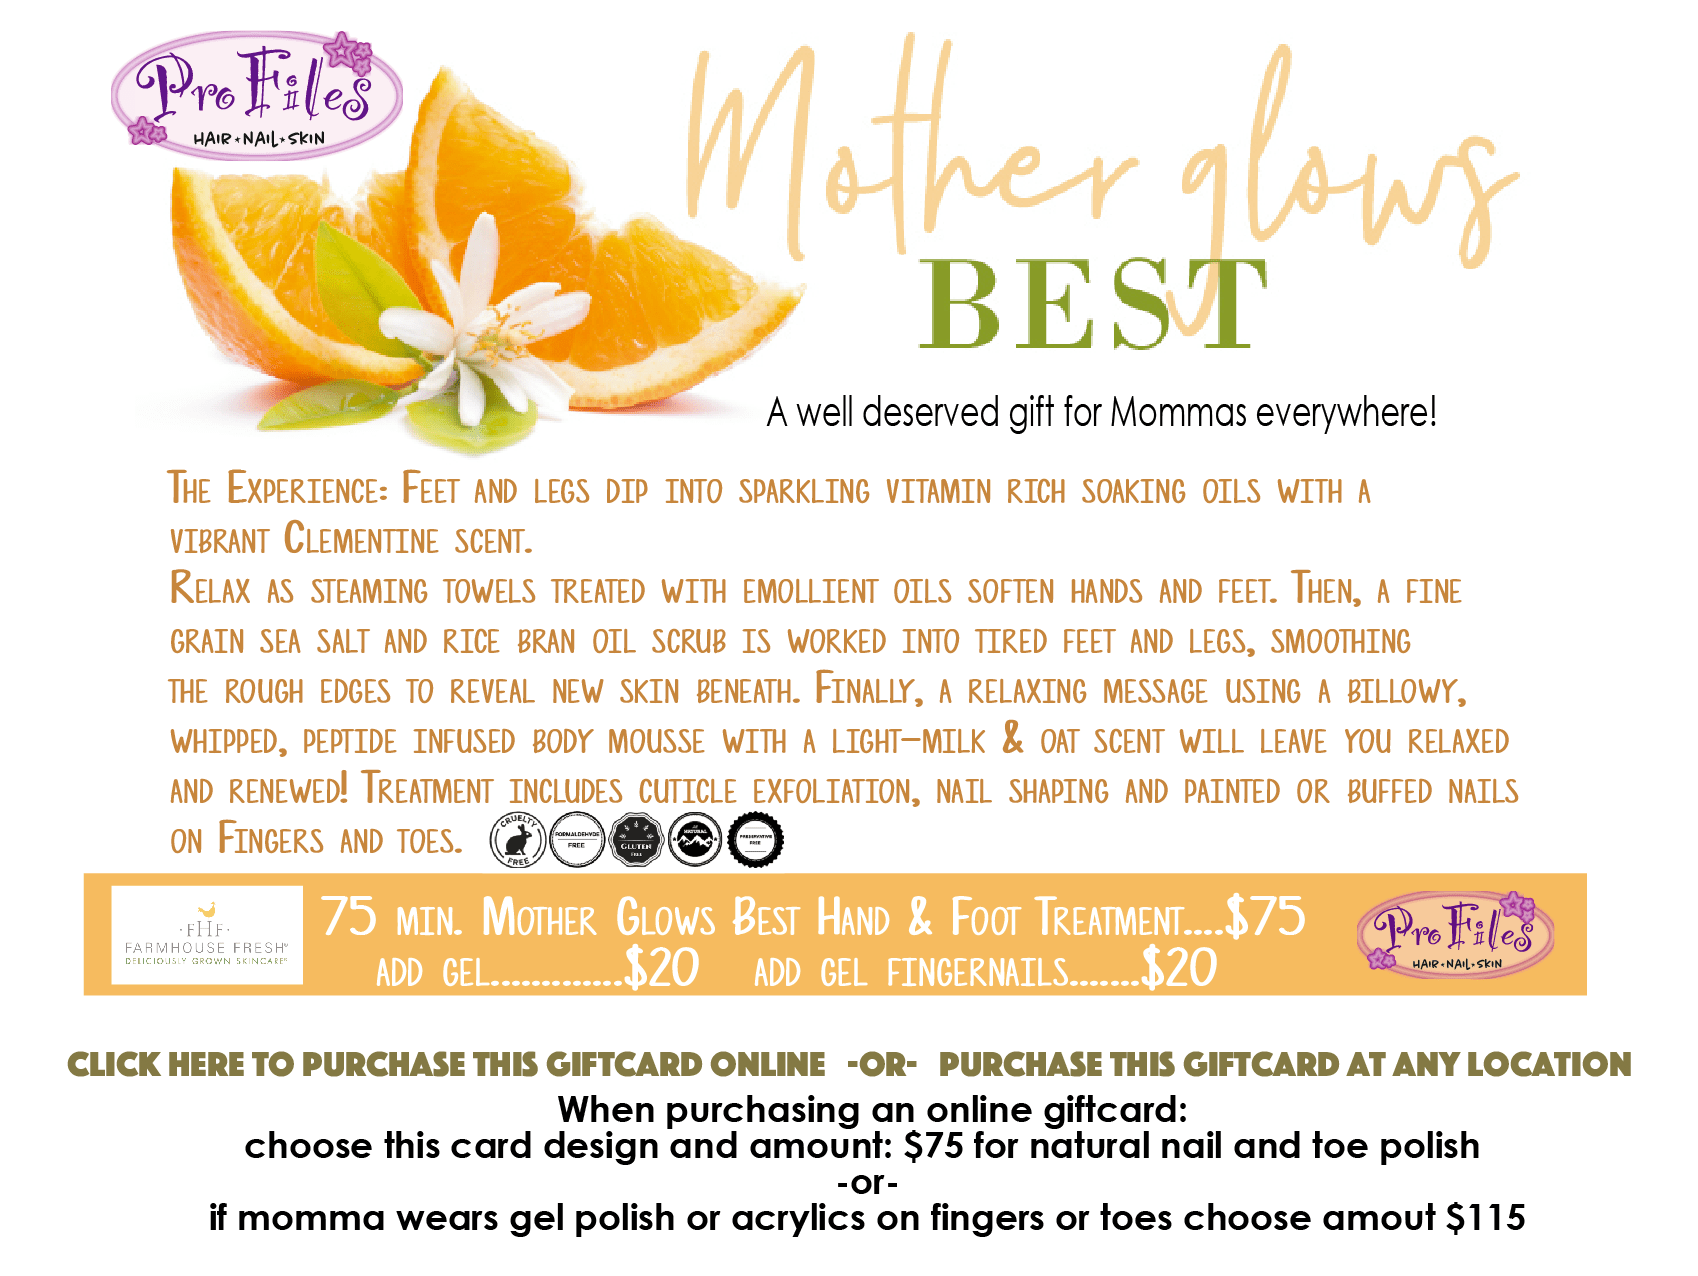 Mother glows best: 75 minute hand and foot treatment for $75. Click to purchase.